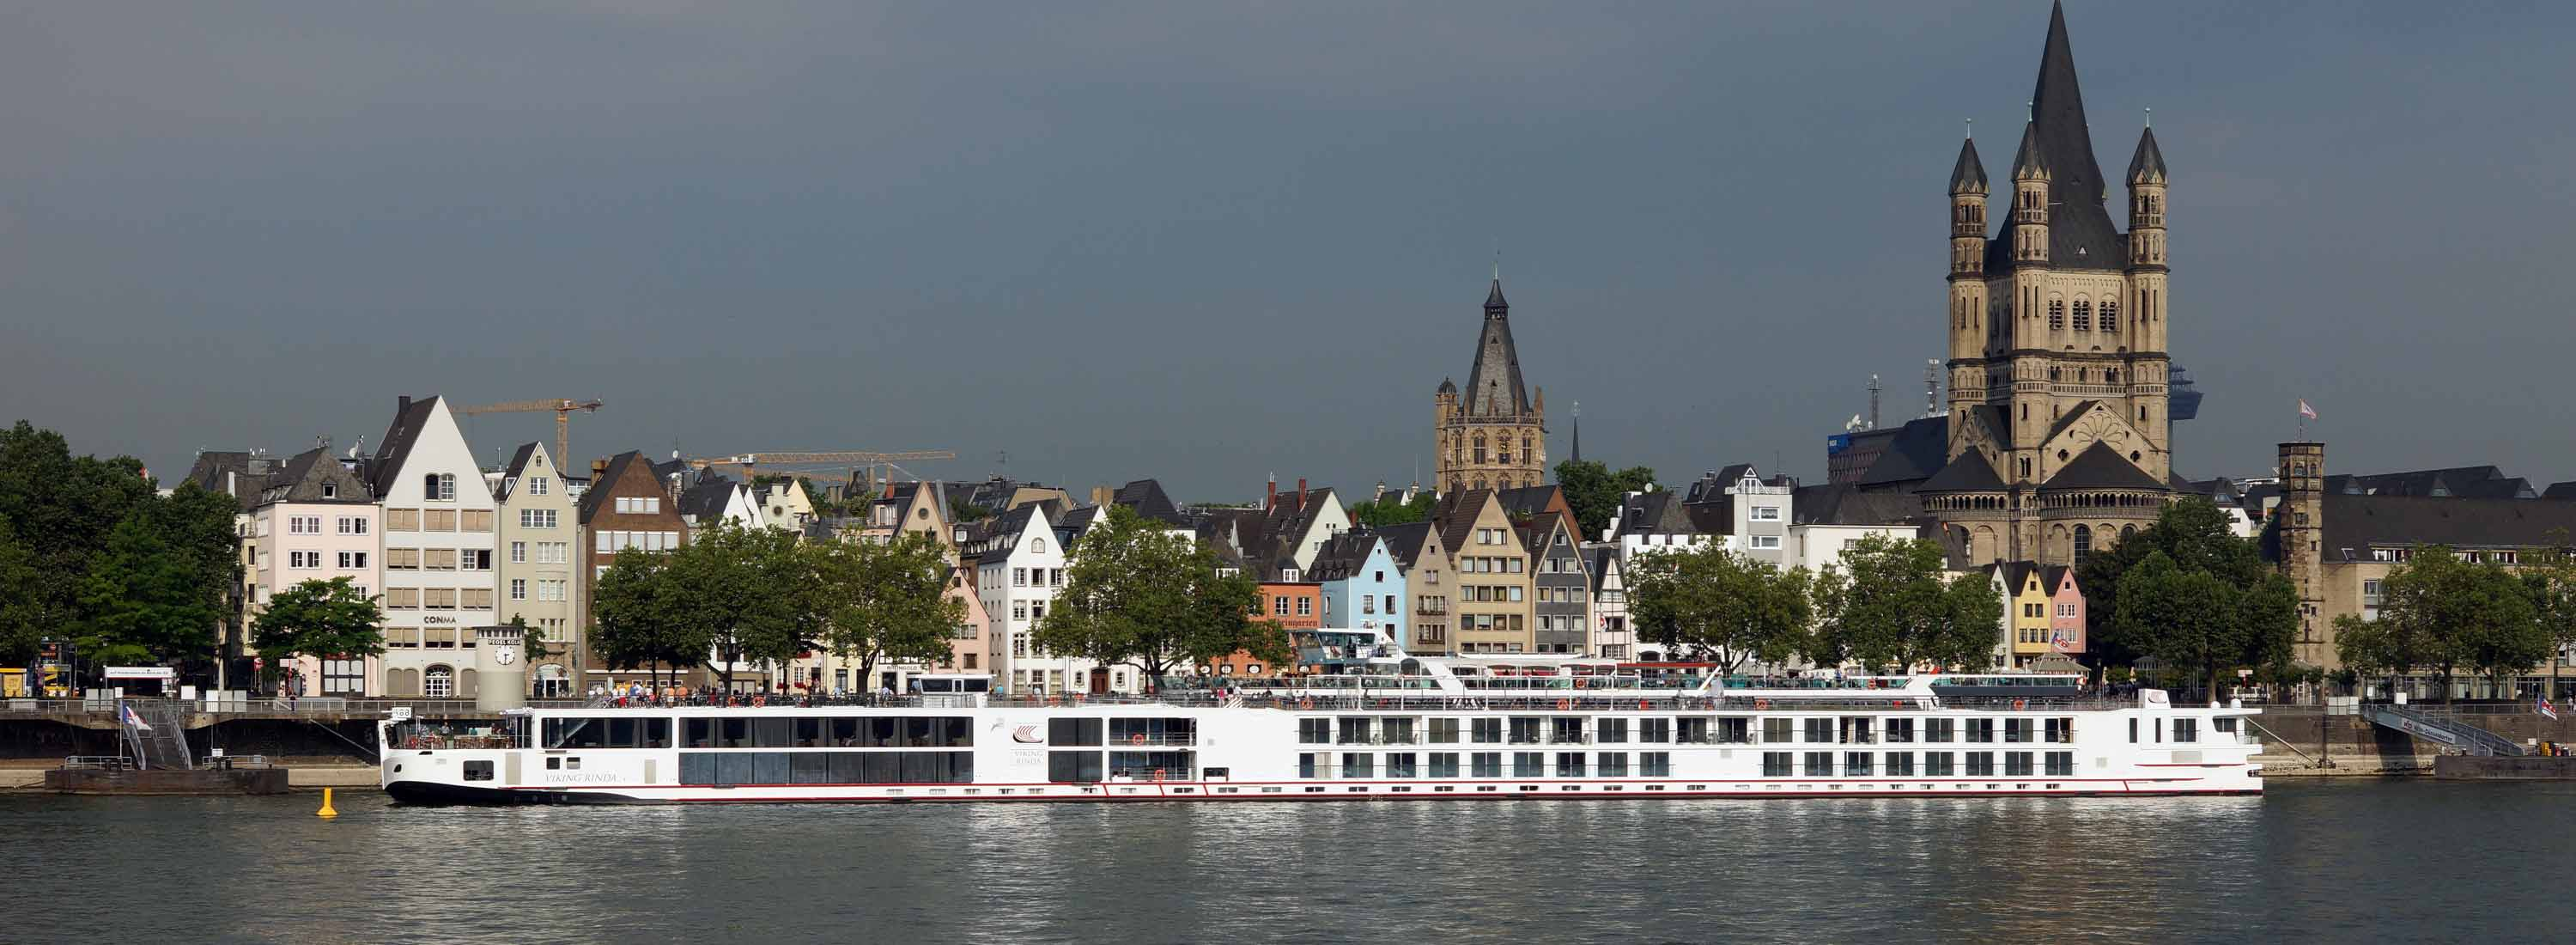 Viking River Cruises *- Free or Reduced Air & Bonus Agency Perks